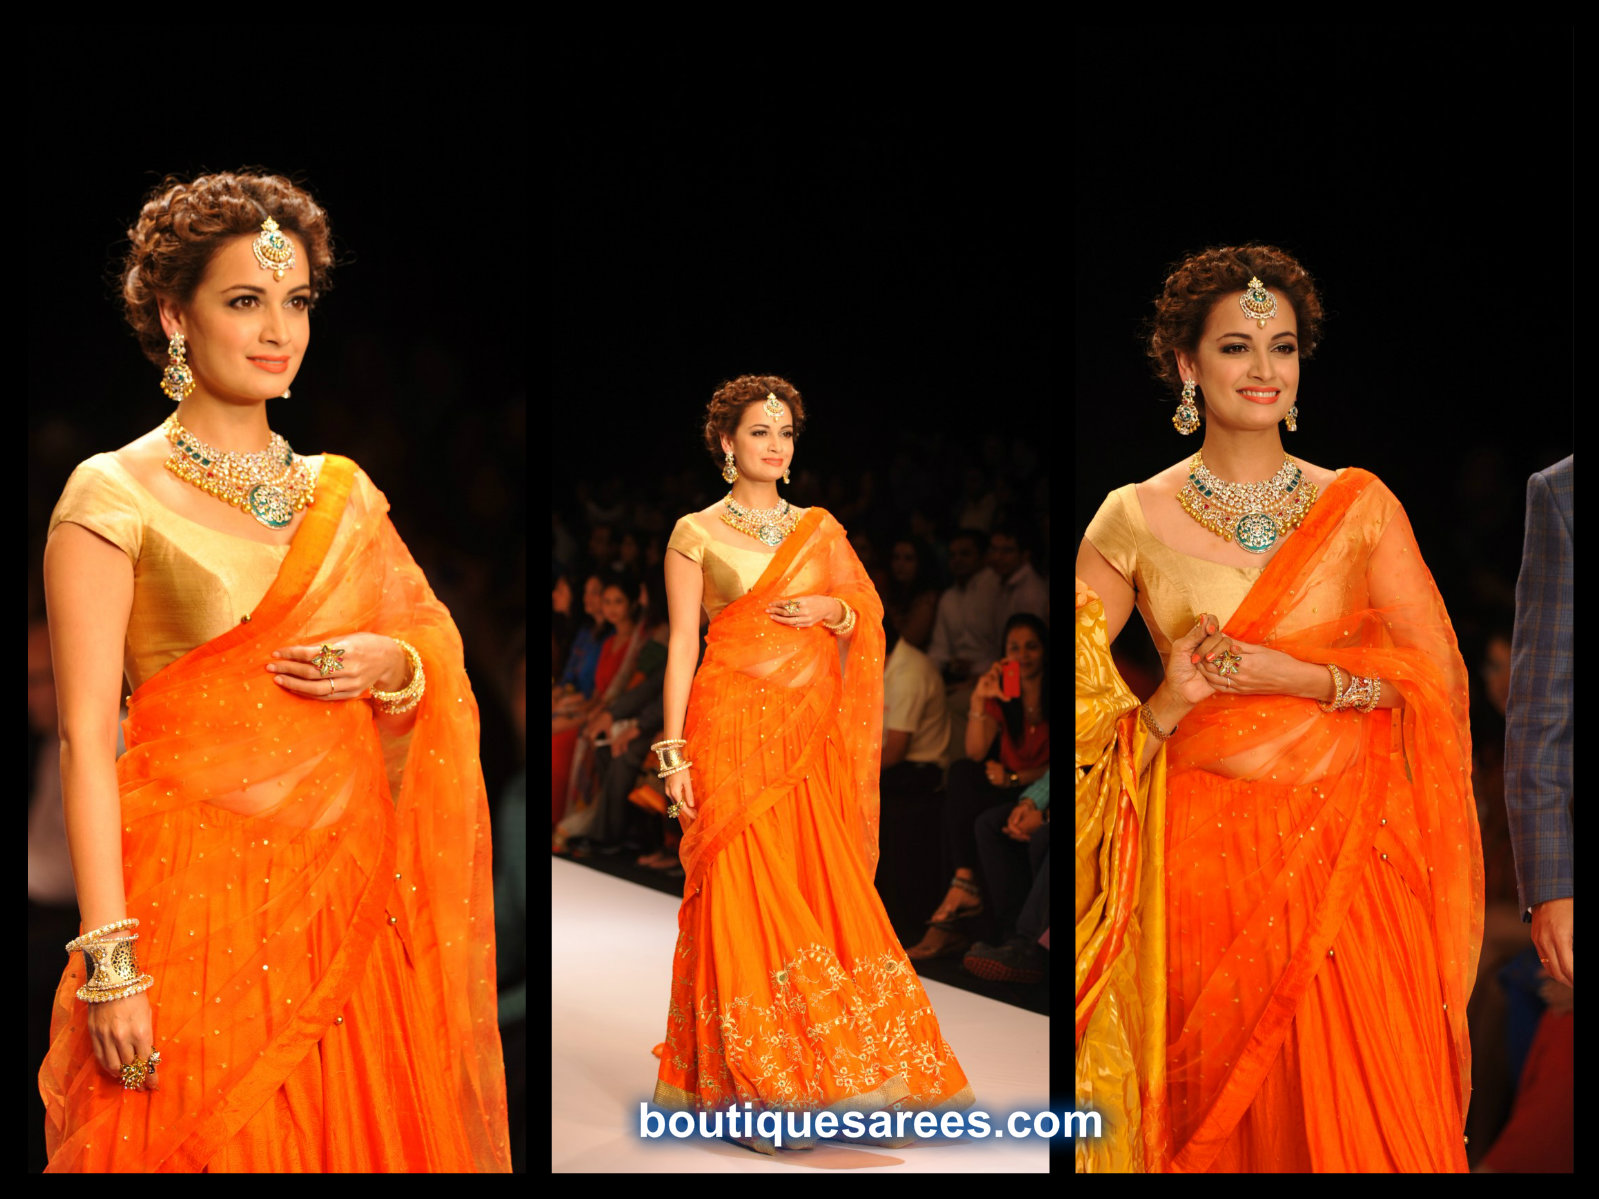 Dia Mirza Walks for Shobha Shringar Jewels at IIJW 2014